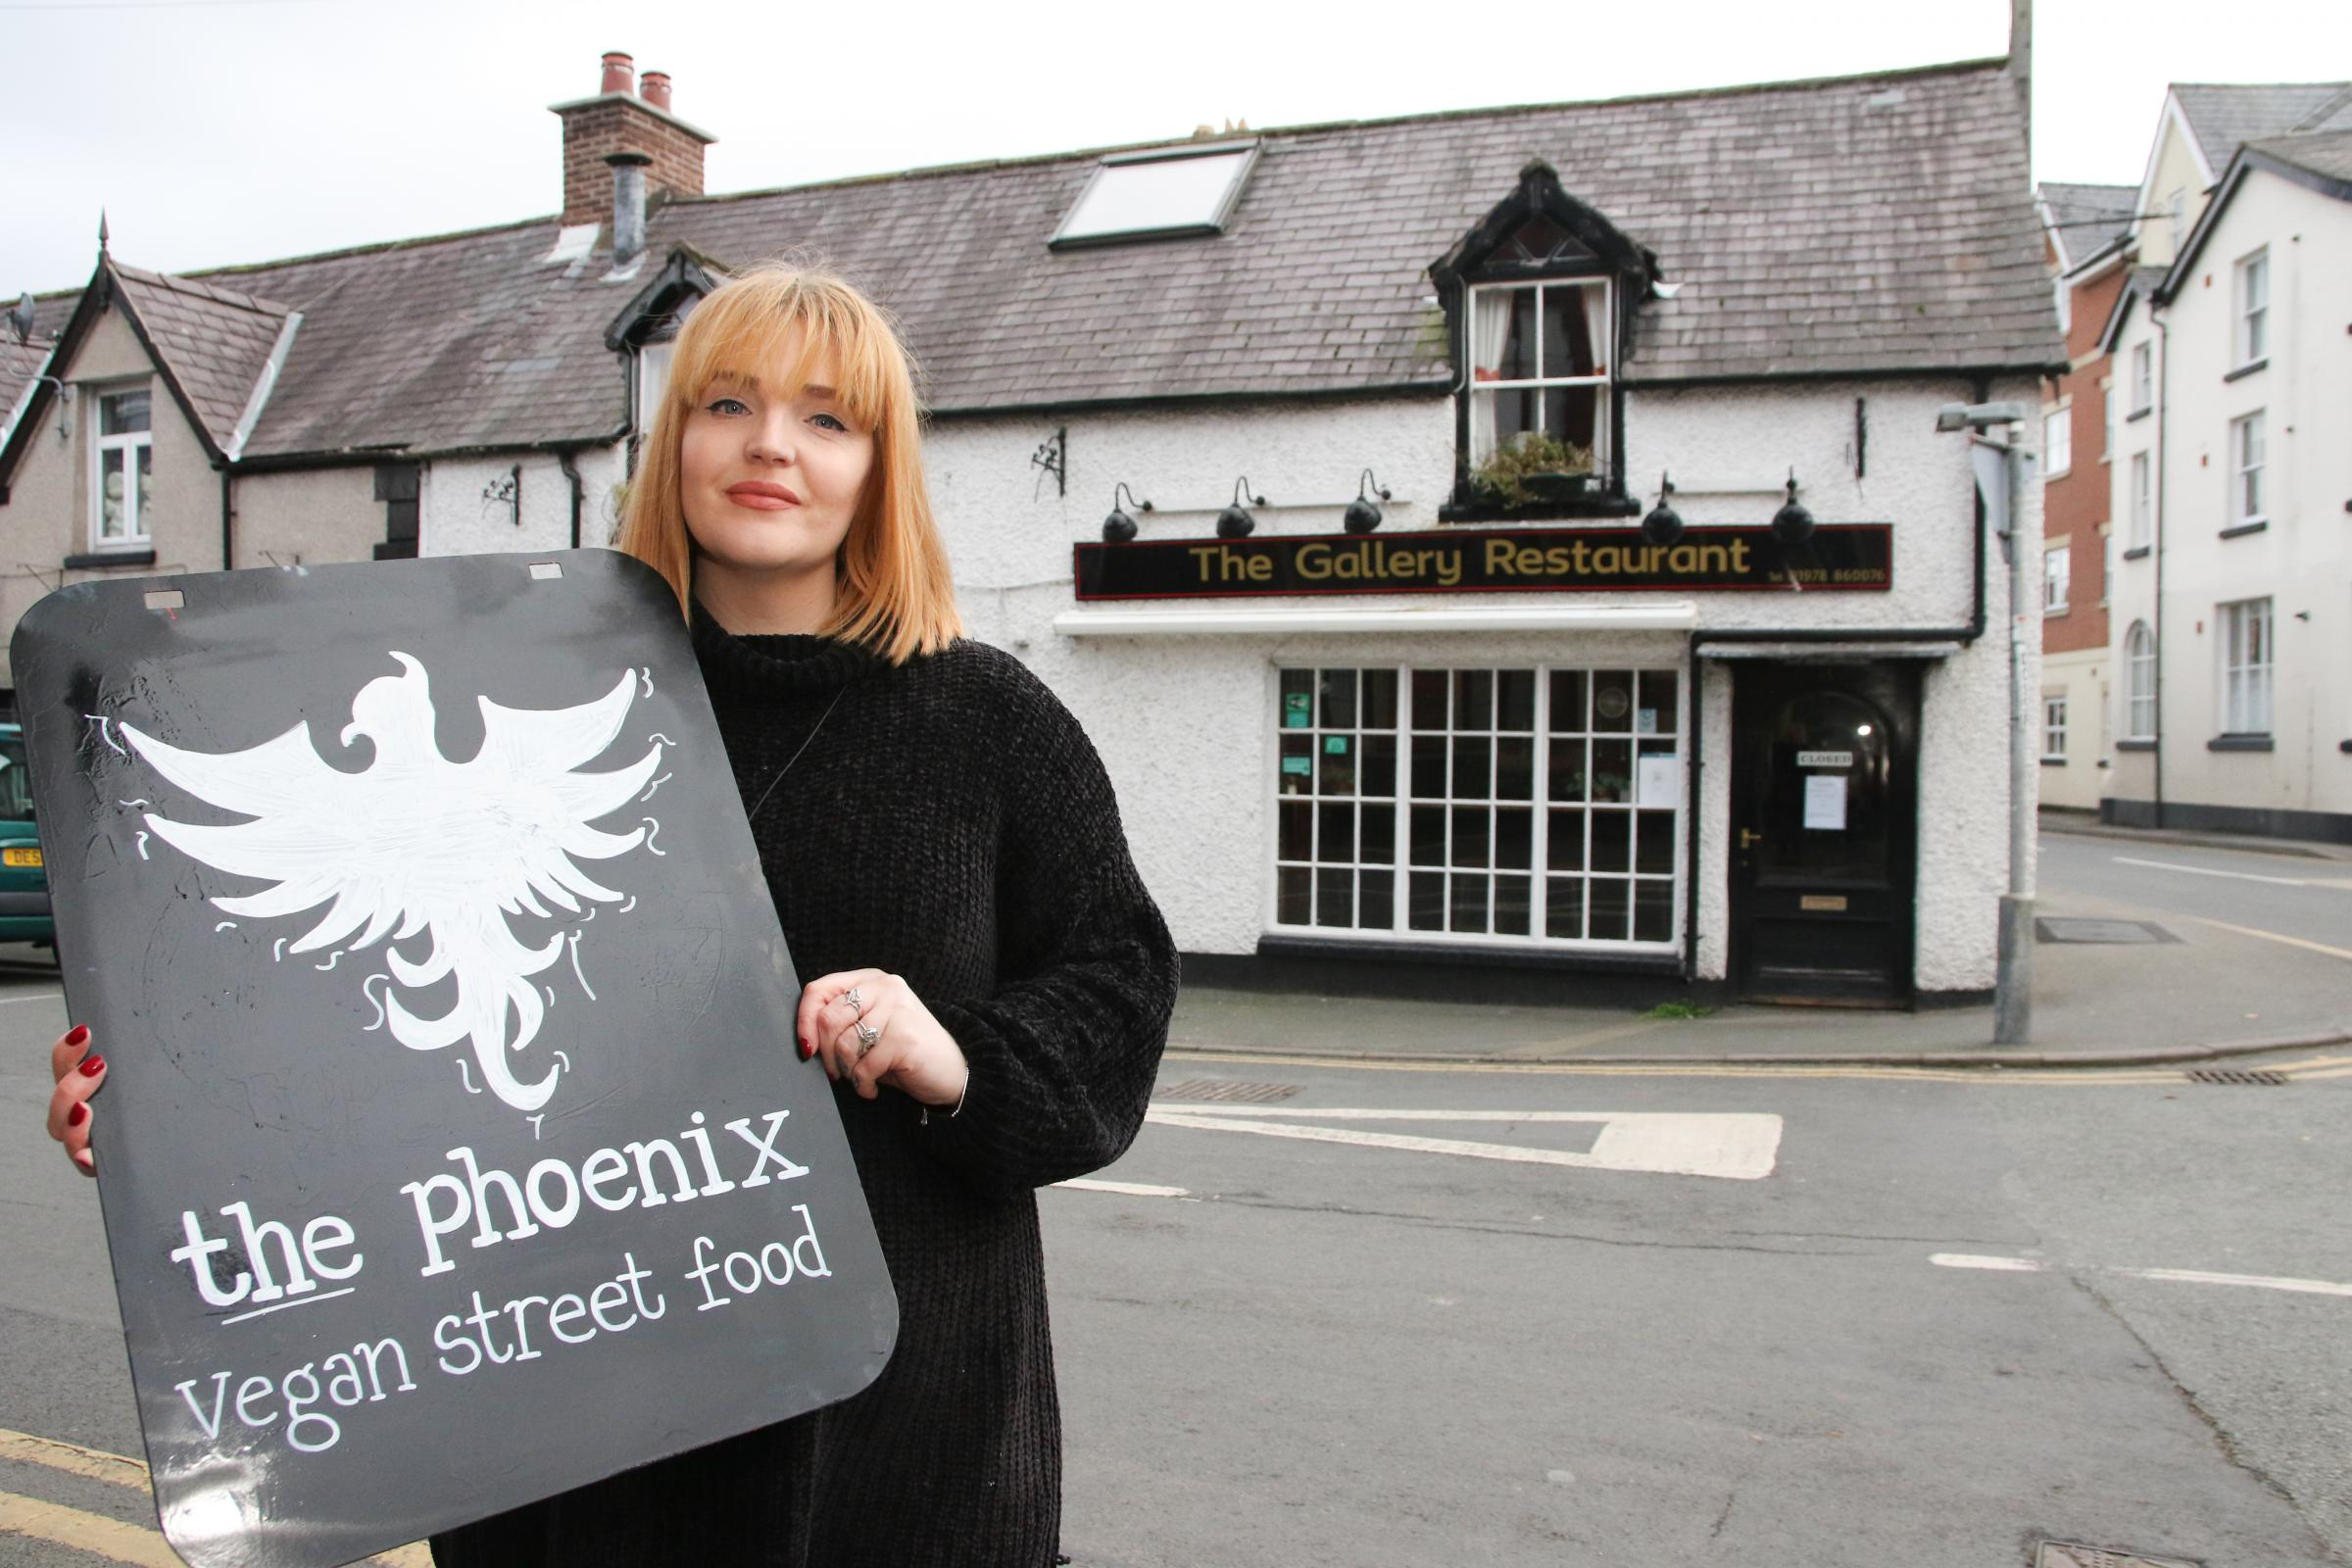 Vegan restaurant to open in Llangollen... without 'mock meats' on the menu